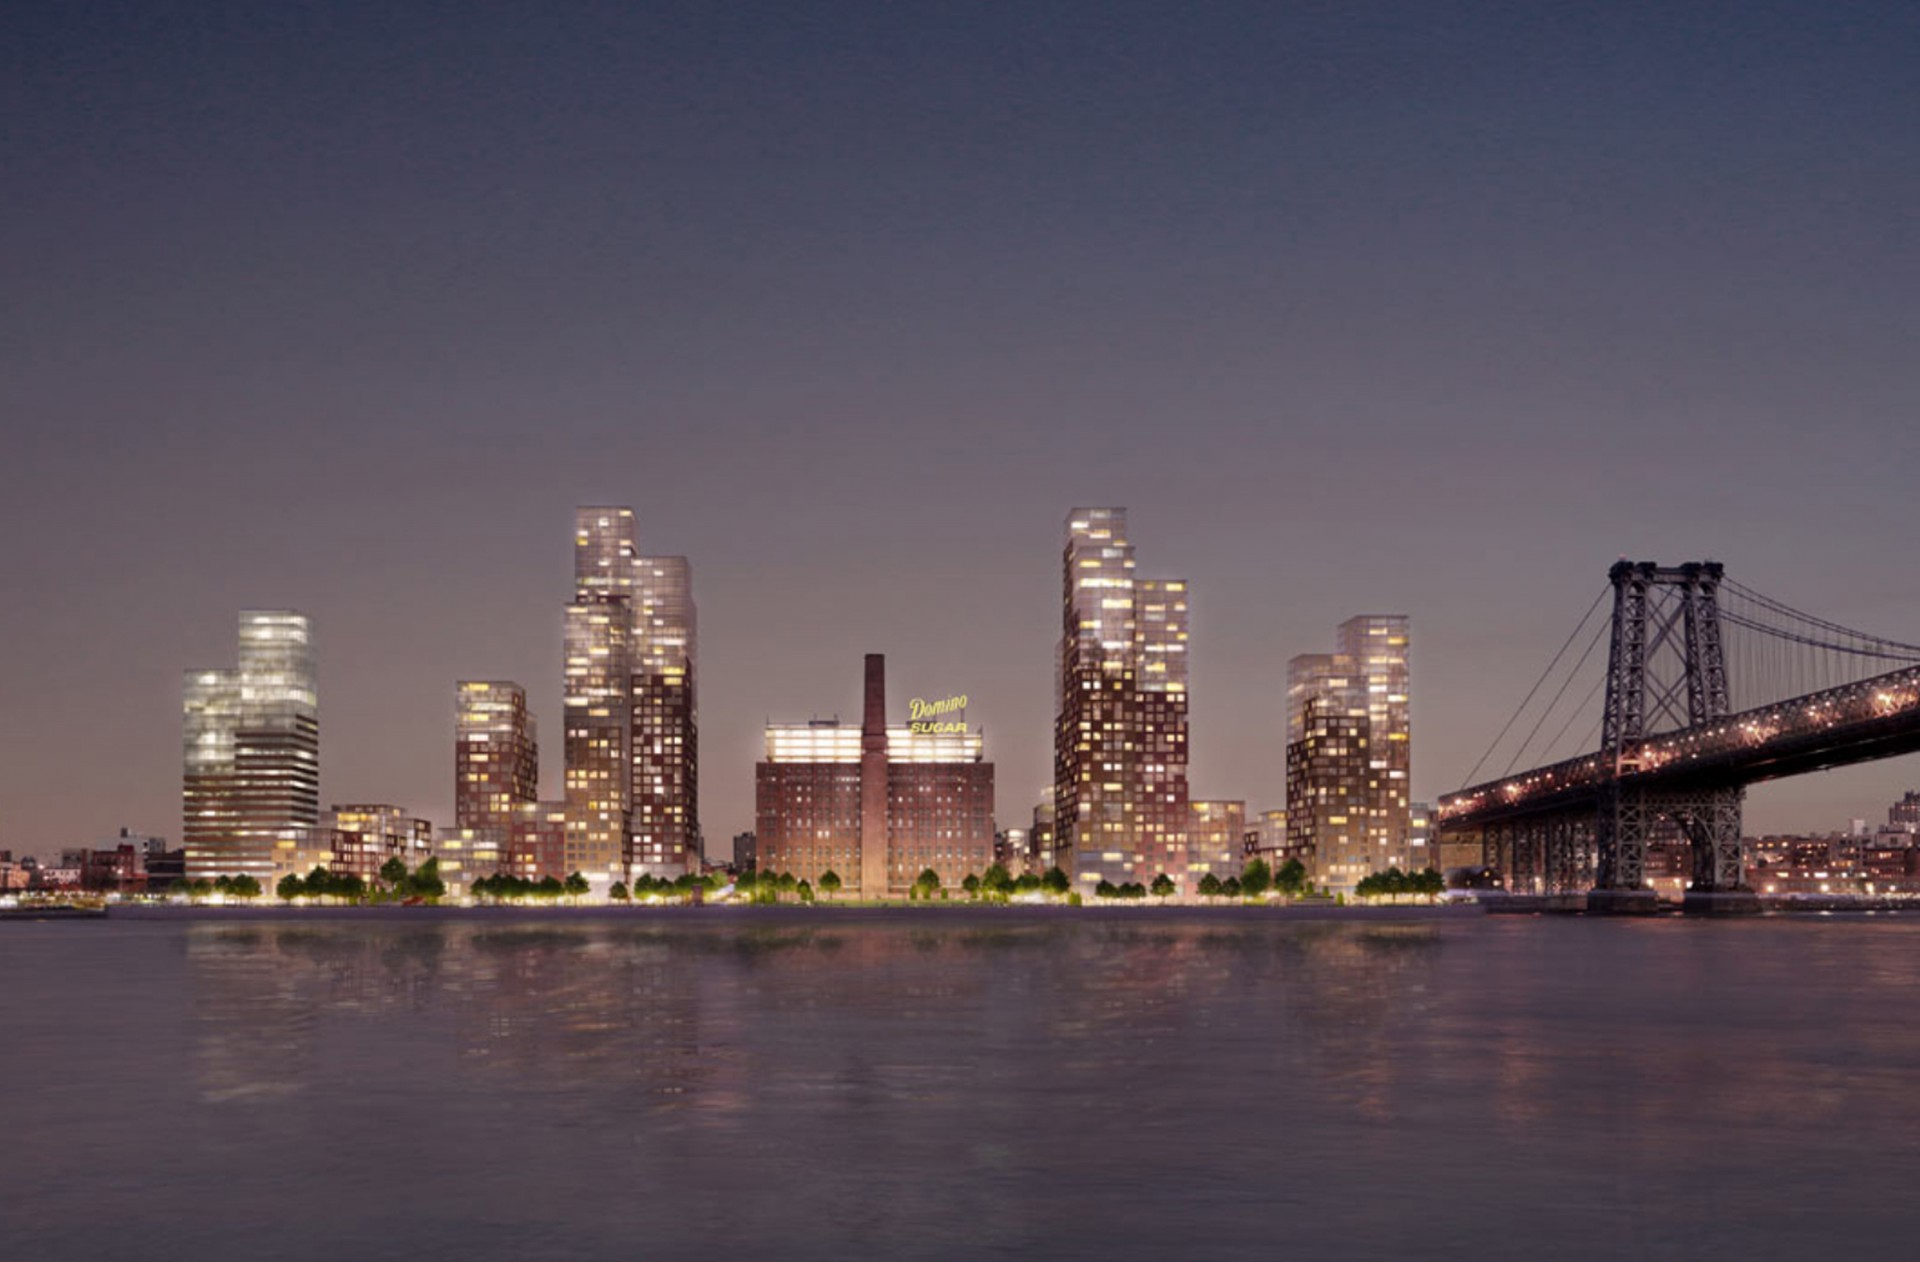 Domino Sugar Refinery landscape architecture